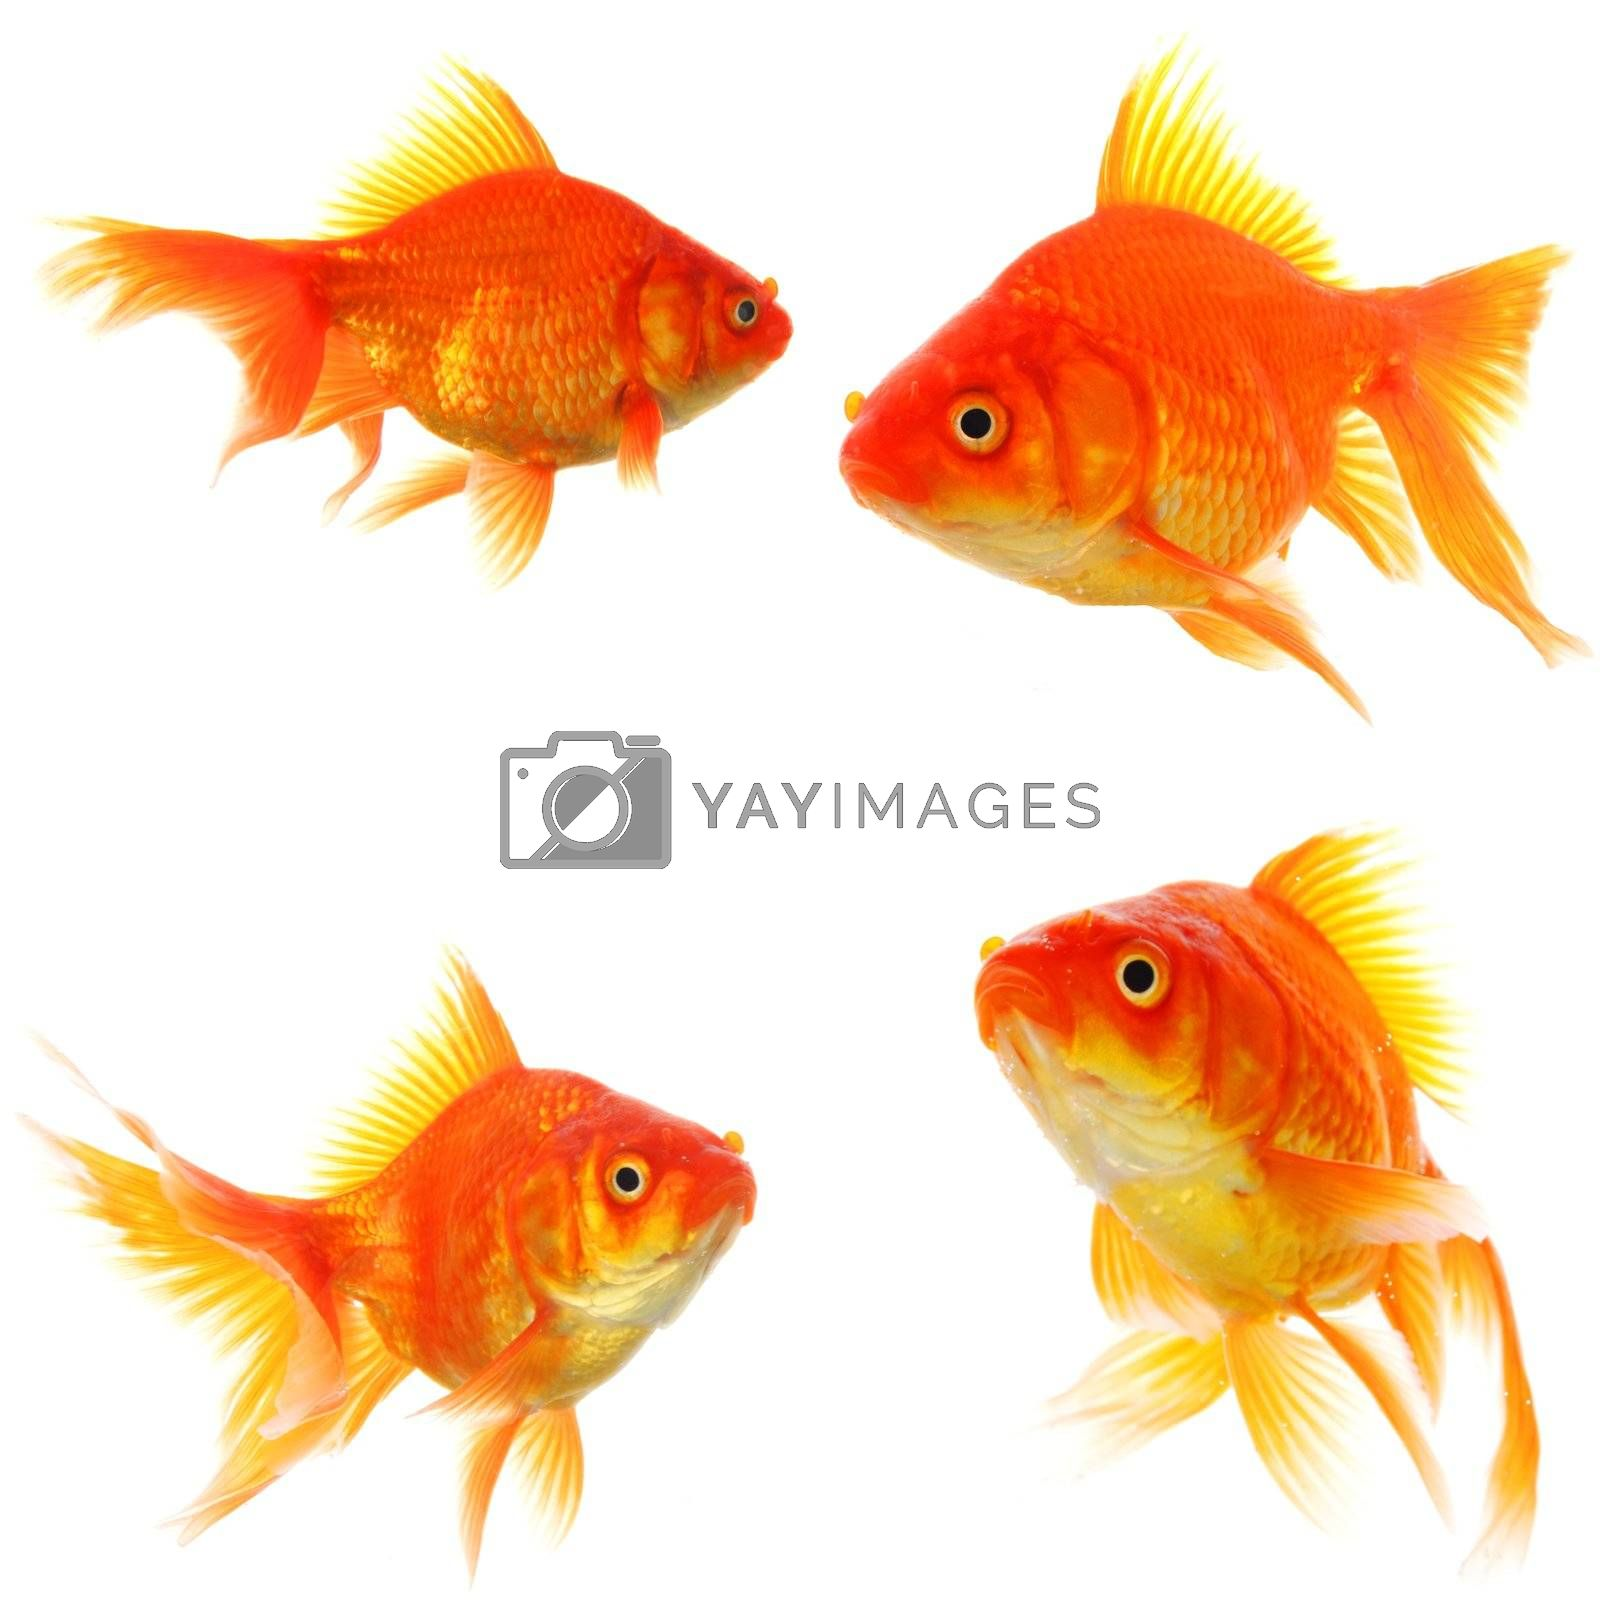 goldfish collection or group or fishes isolated on white background